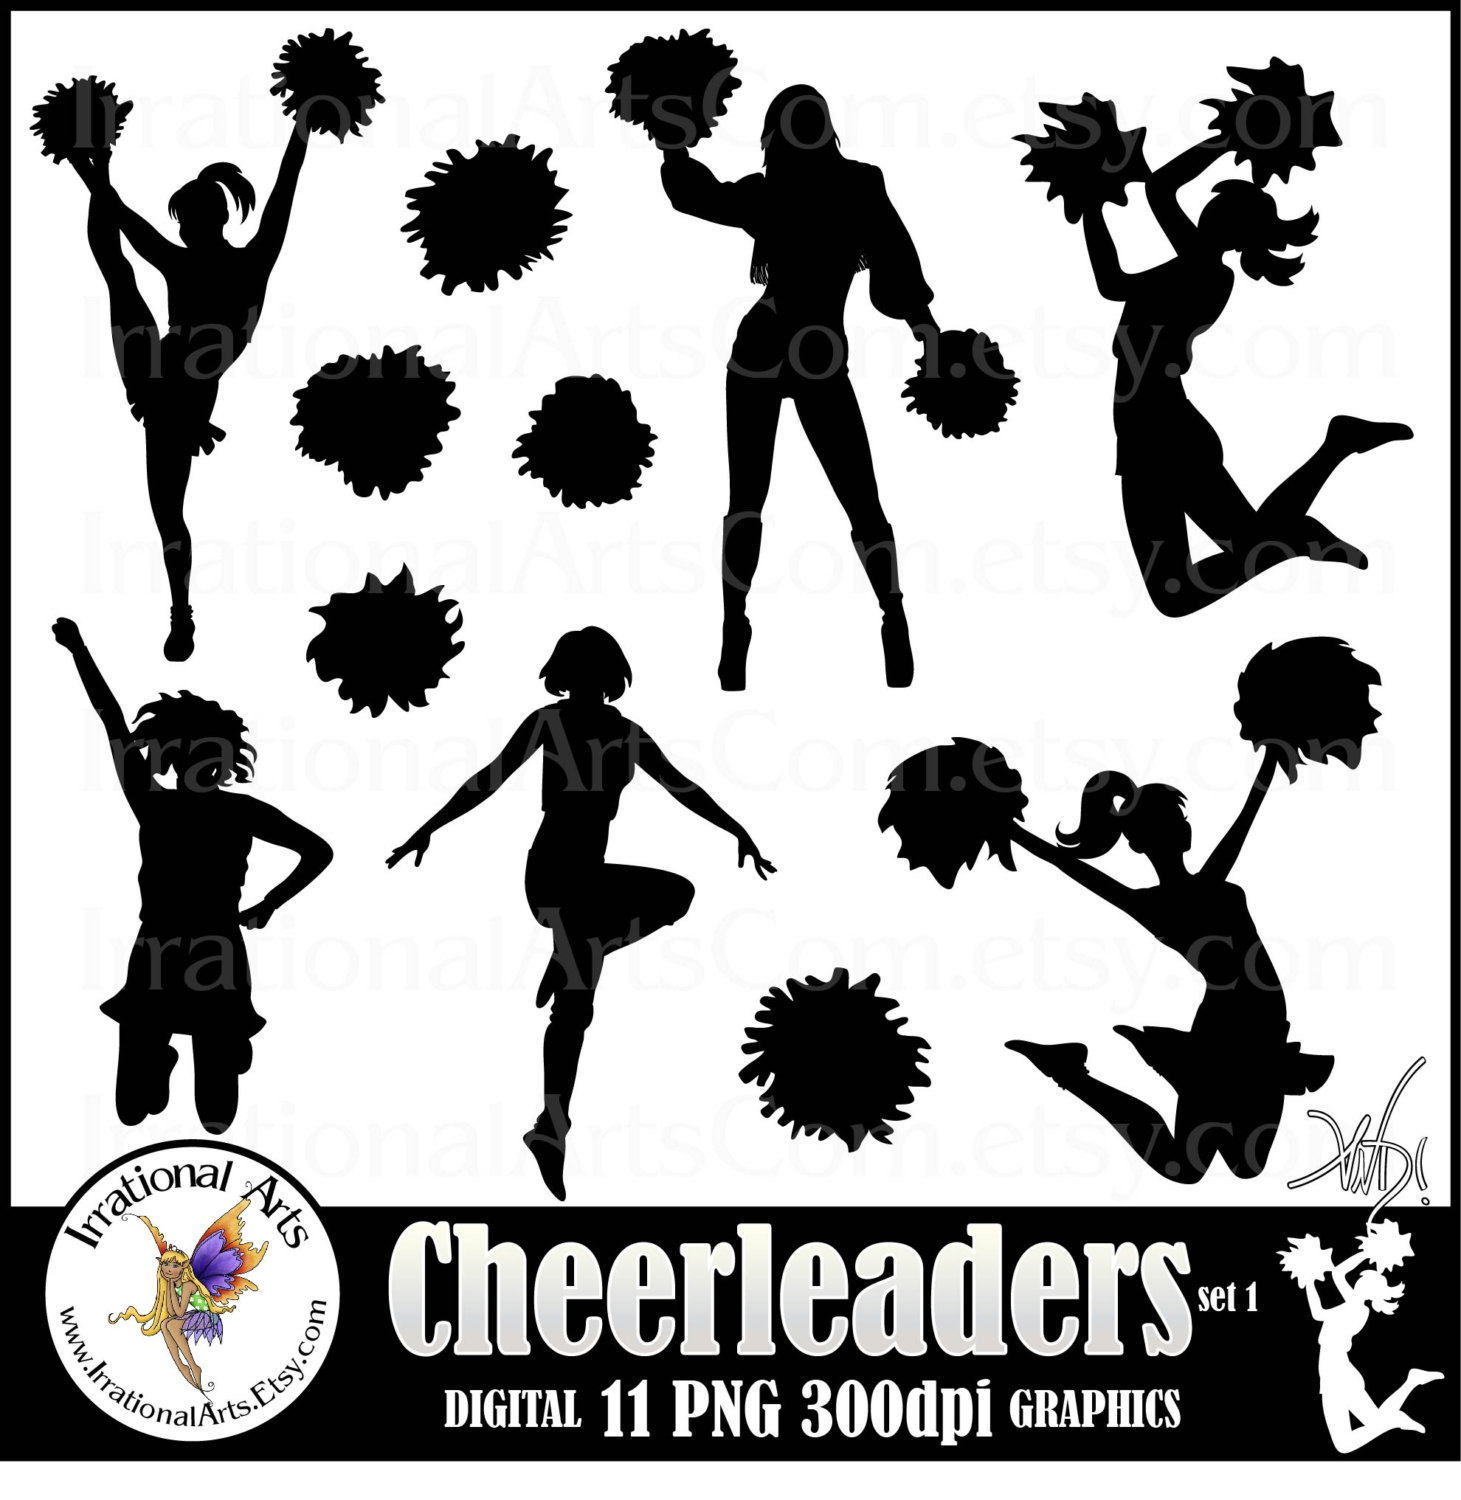 Cheerleader clipart svg clipart library download Cheerleader clipart svg - ClipartFest clipart library download